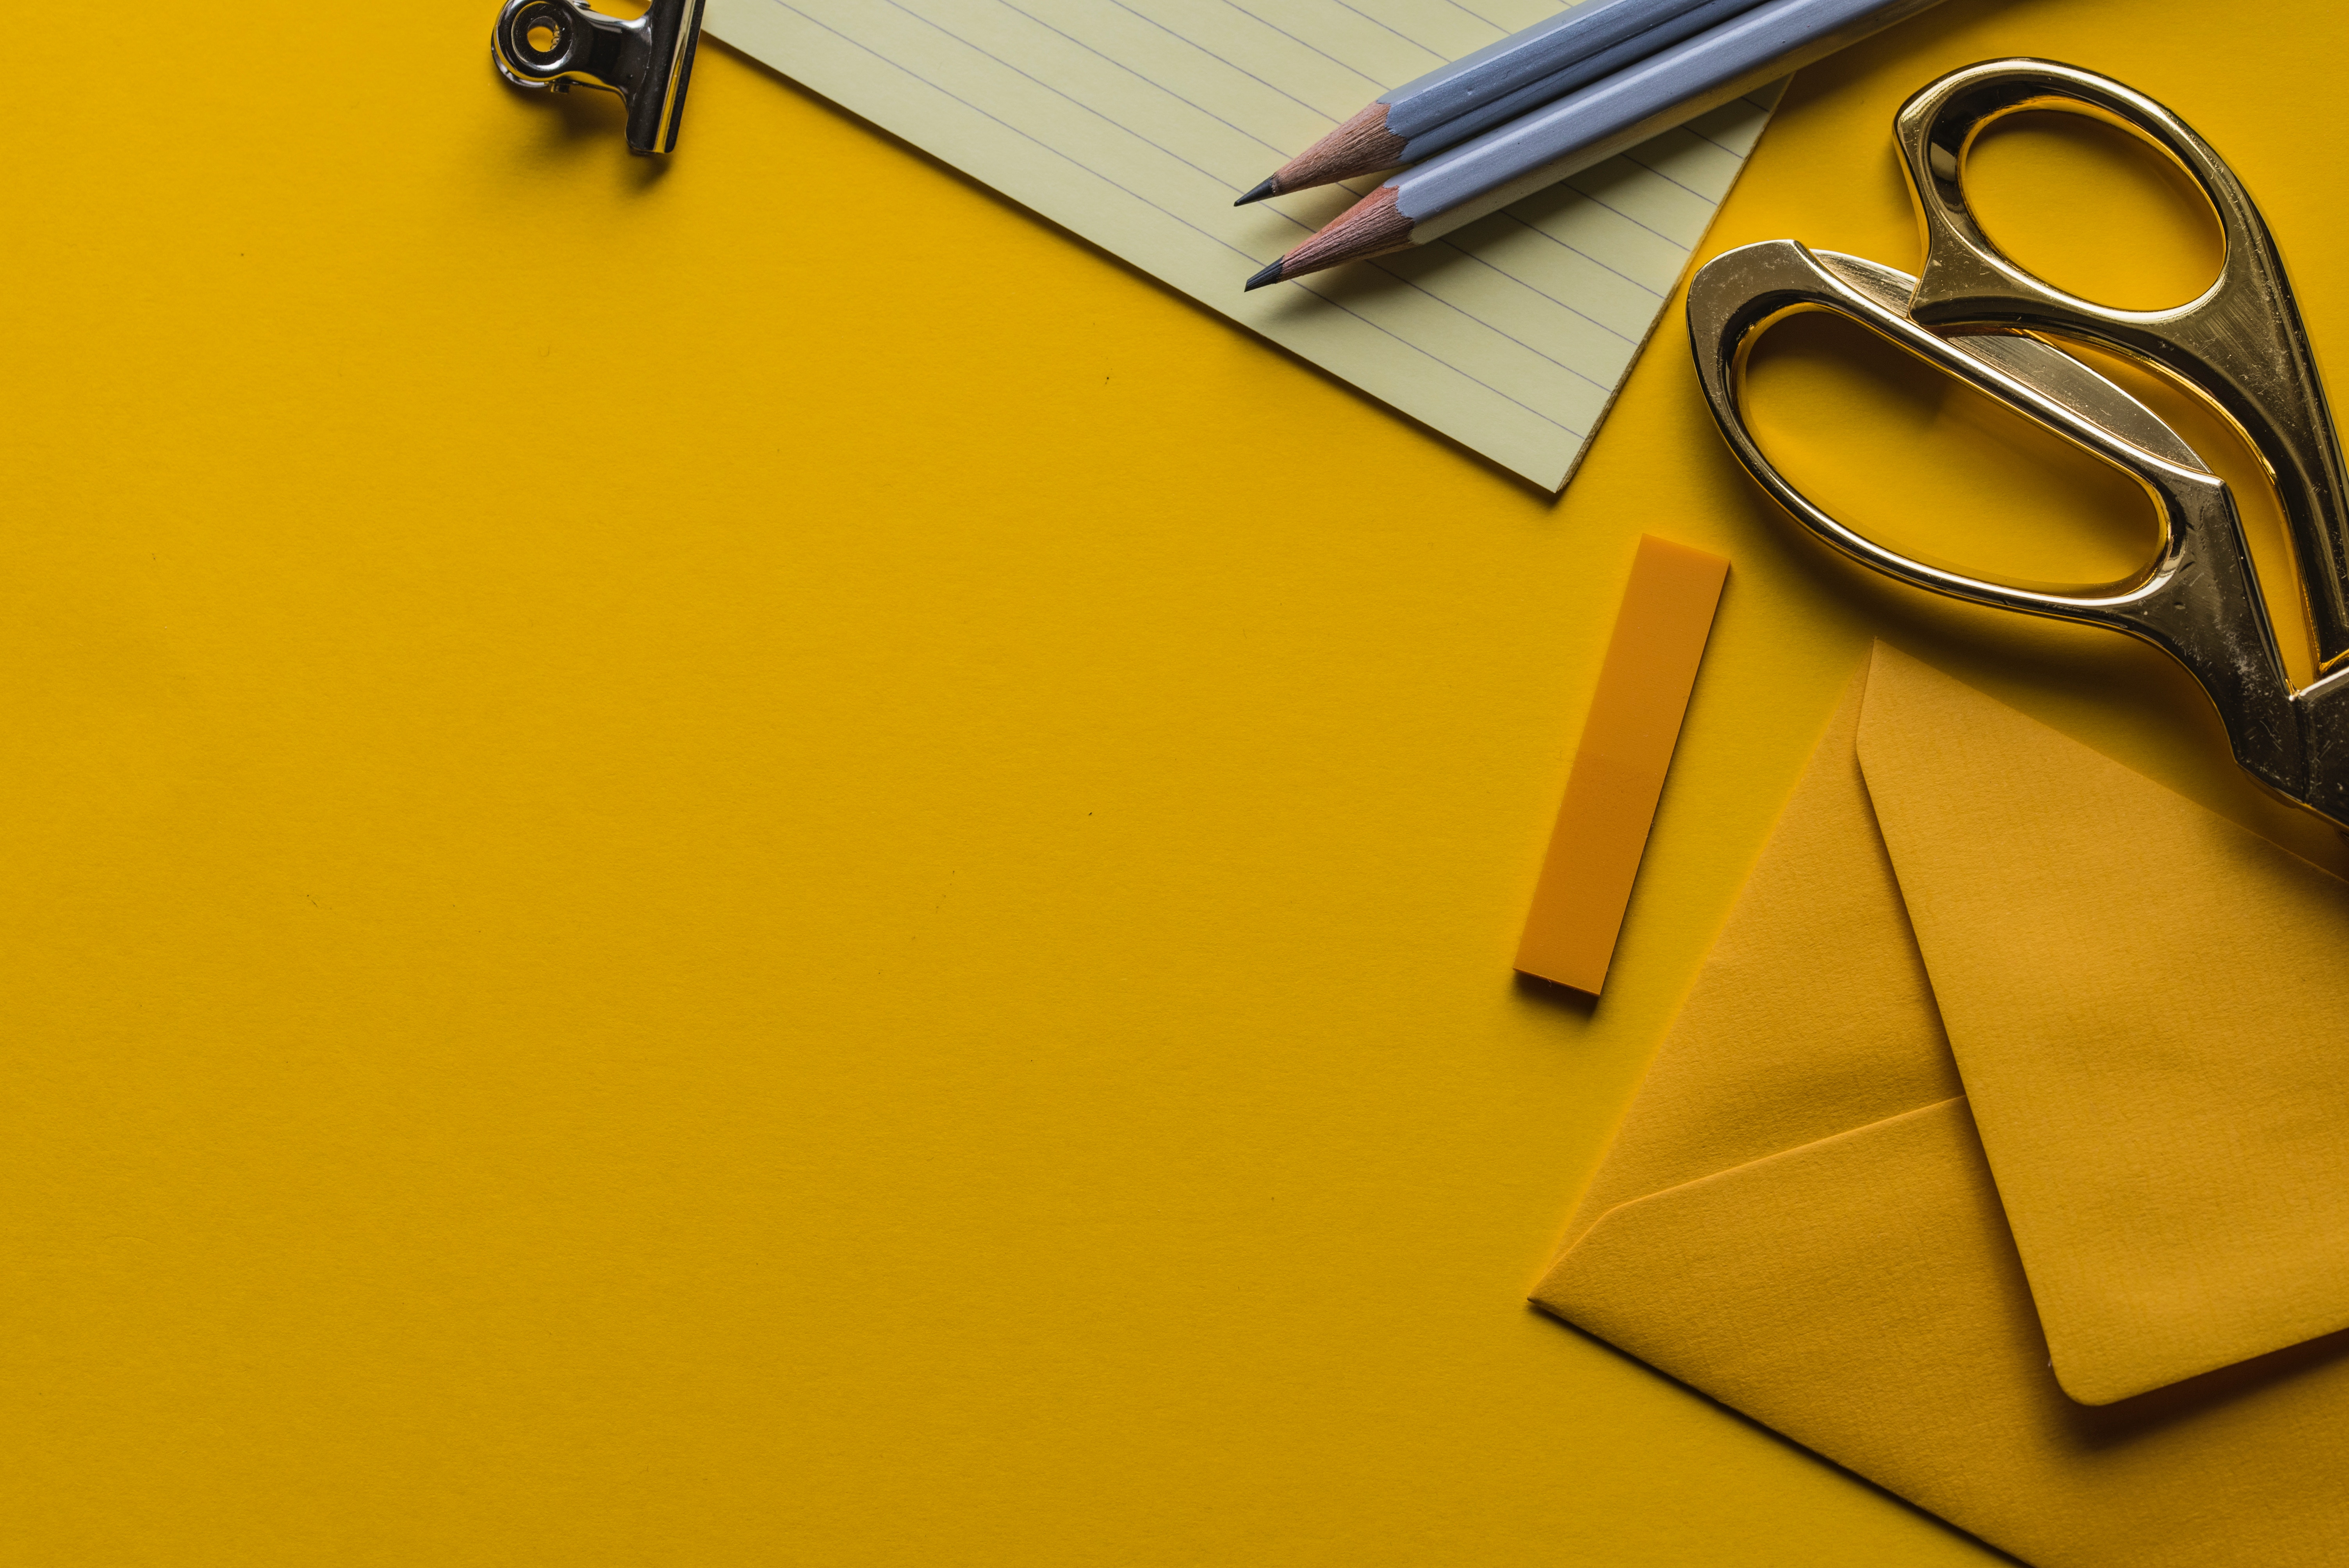 pencil, scissors and an envelope on bright yellow background